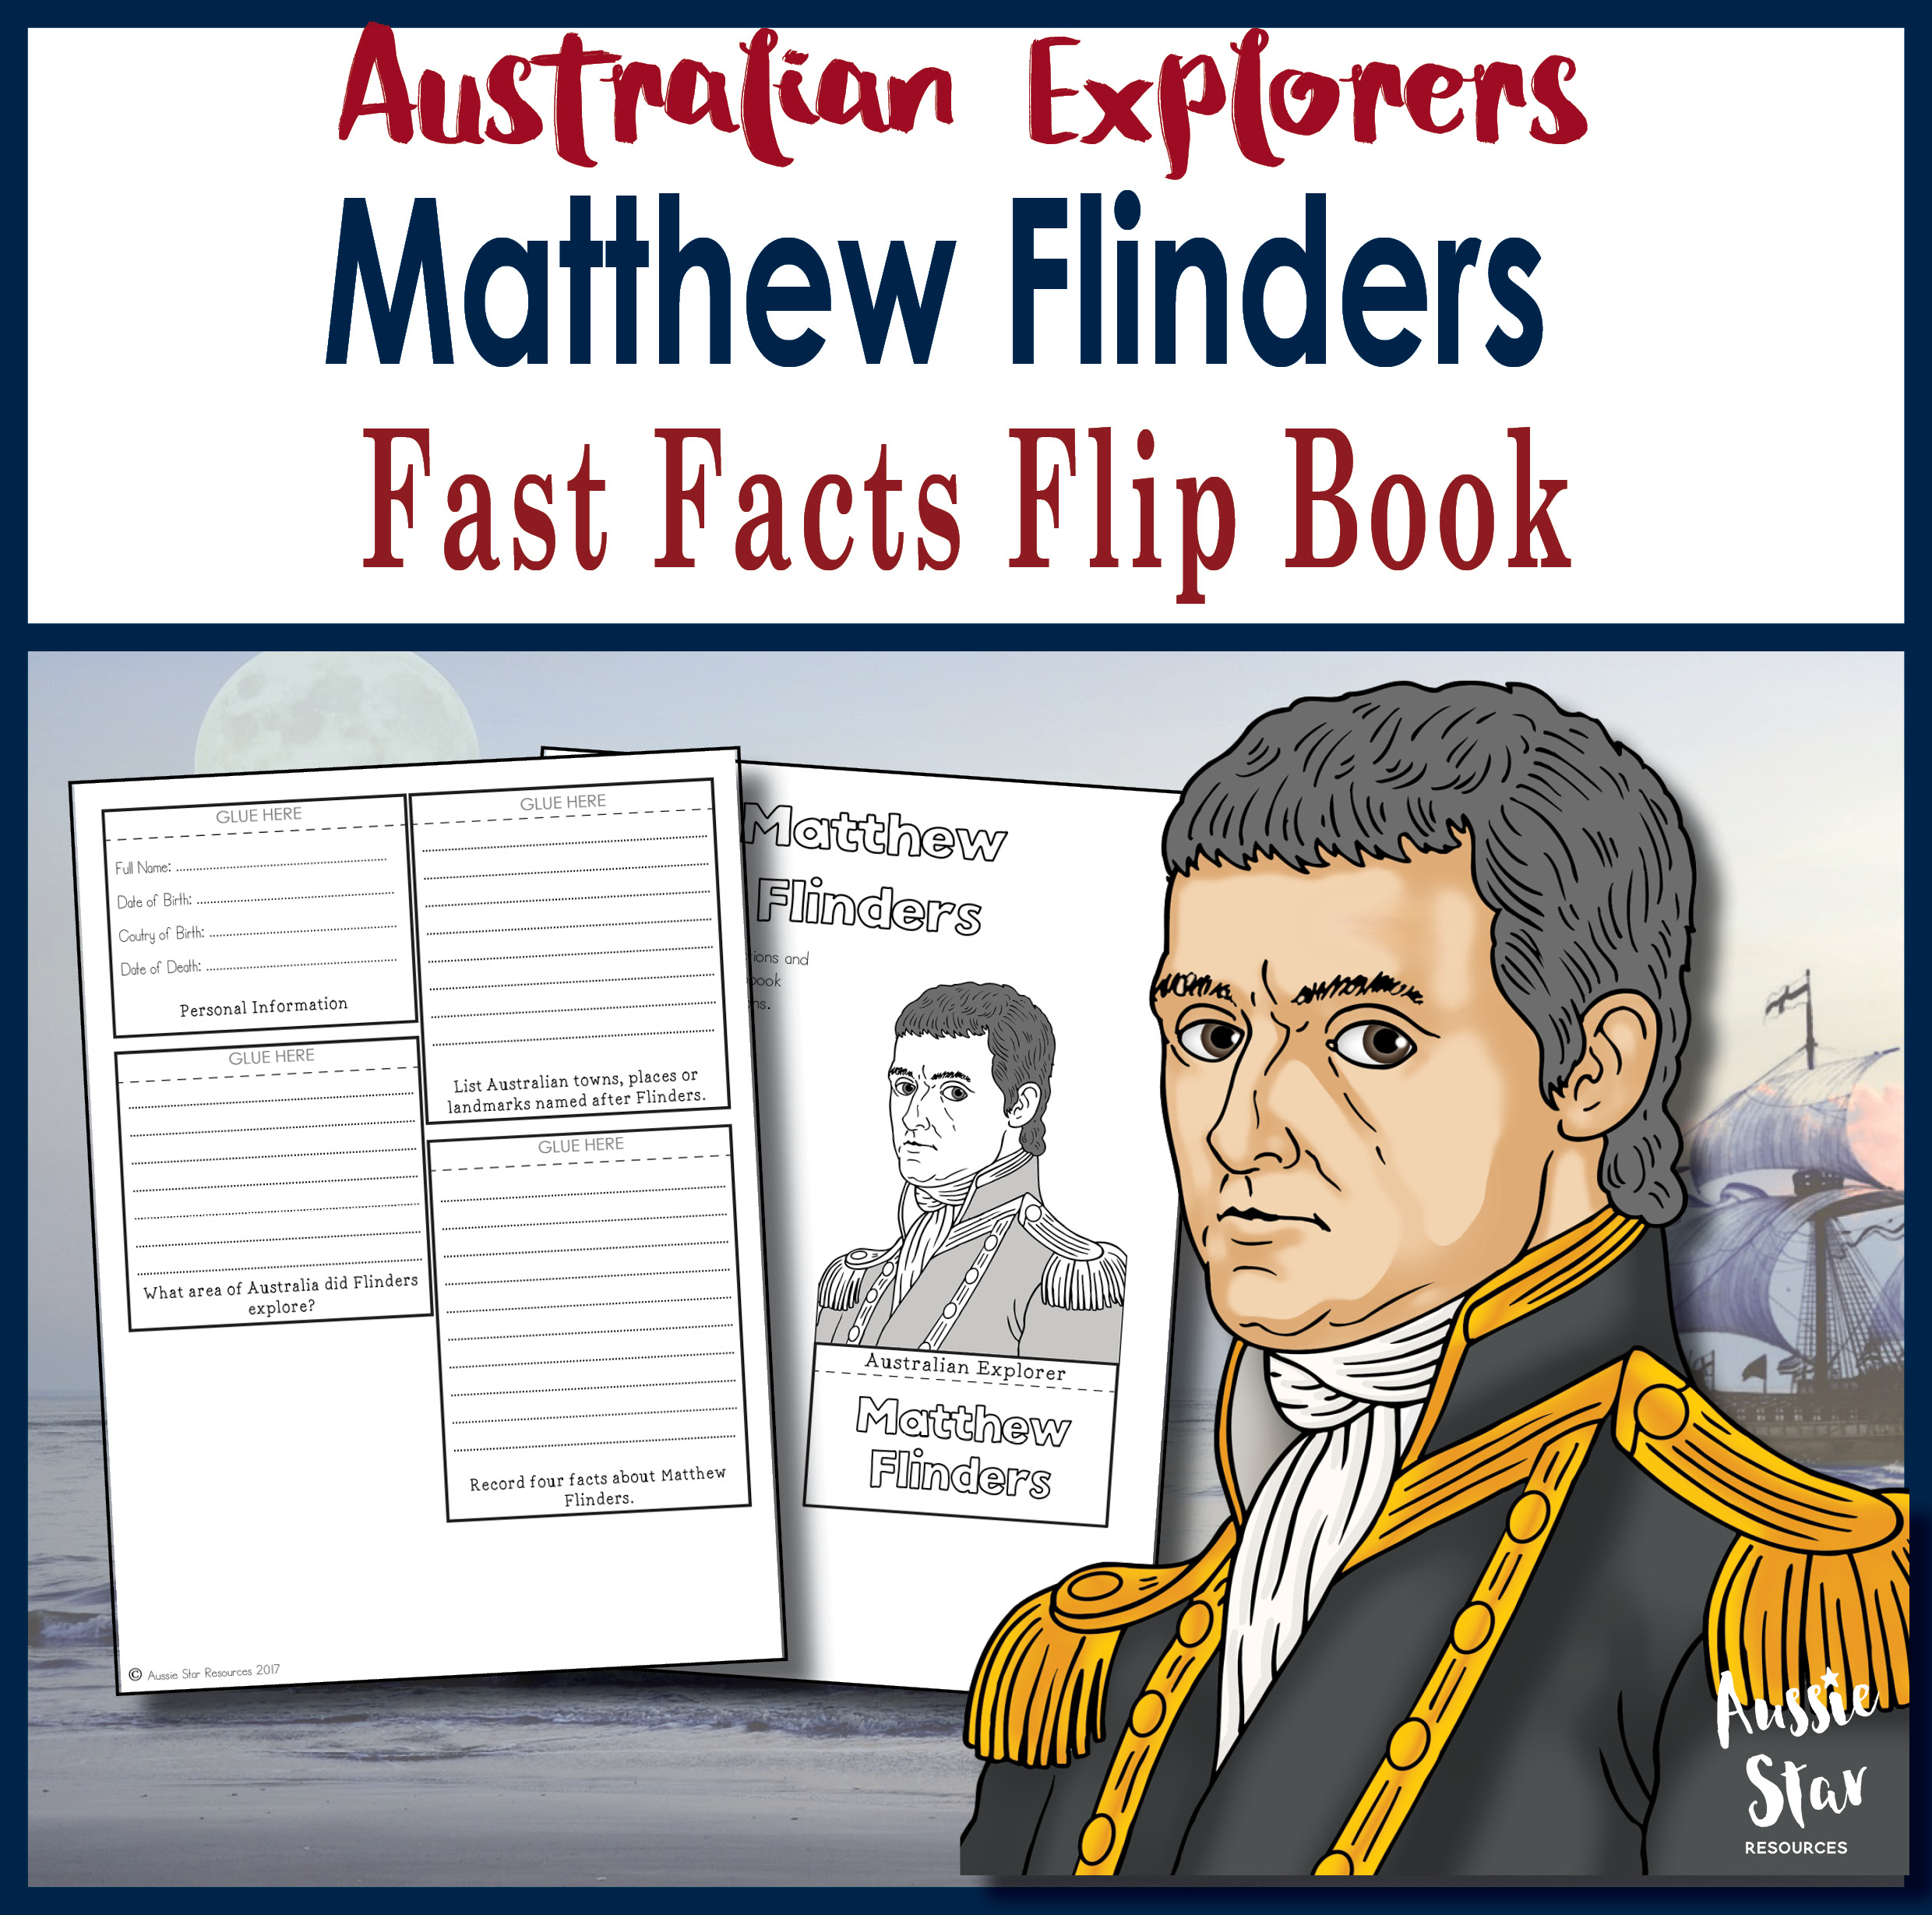 Matthew Flinders fast facts flip book